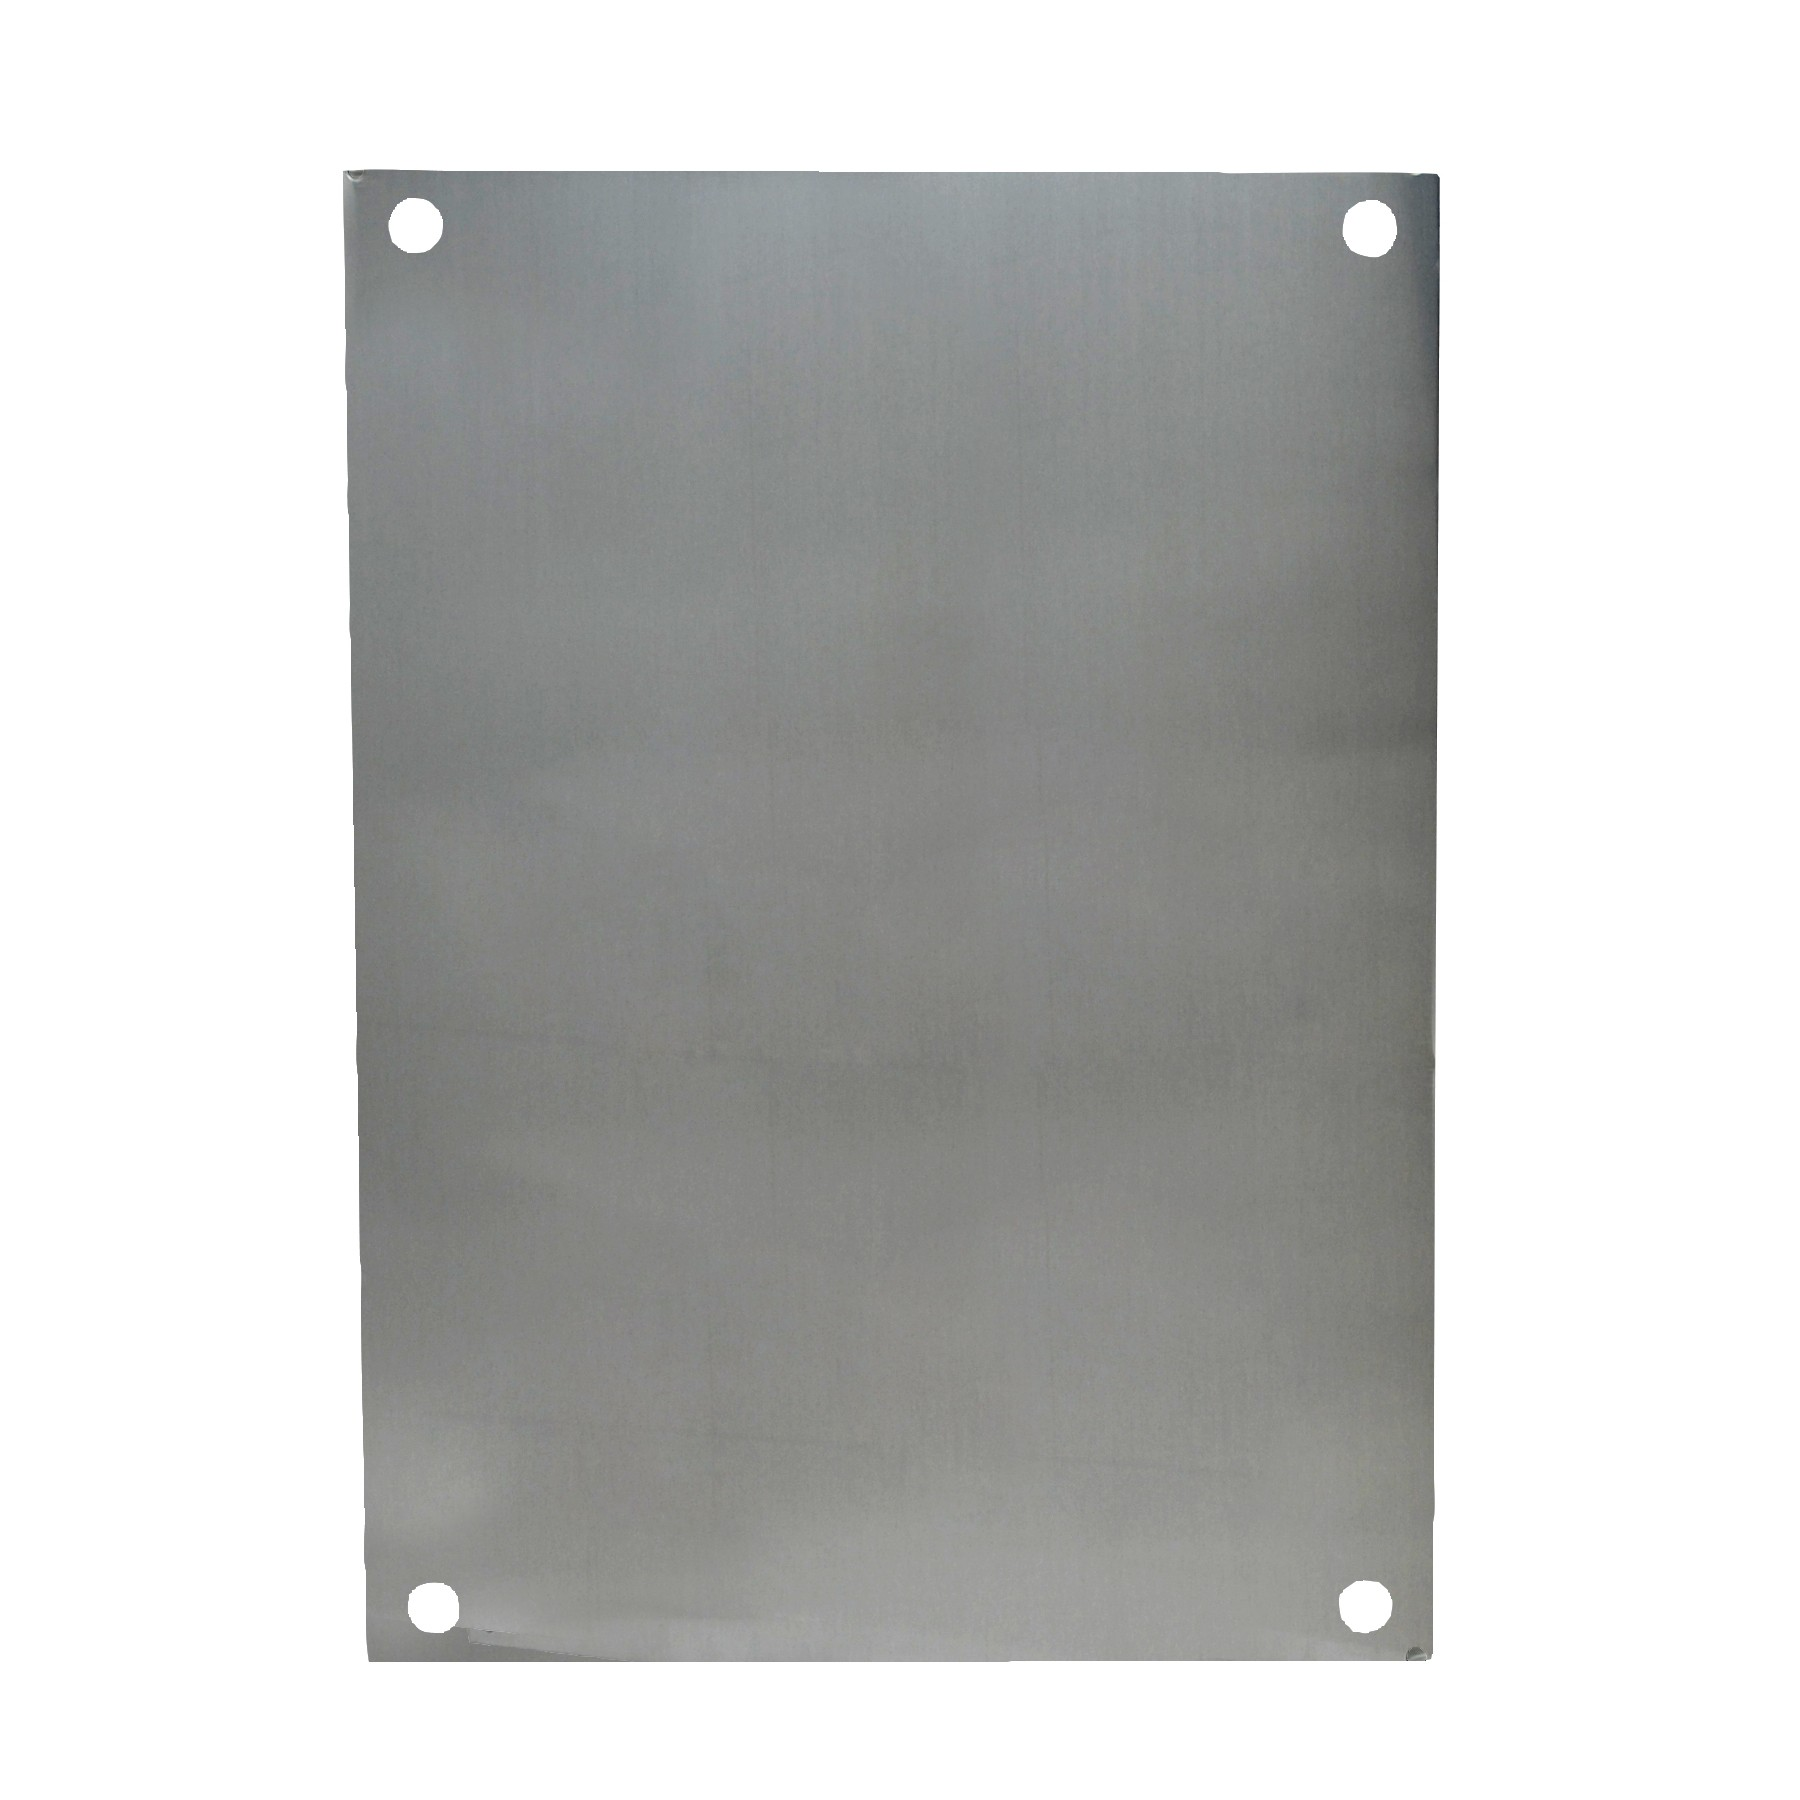 "Aluminum Back Panel for 18"" x 16"" Enclosures"